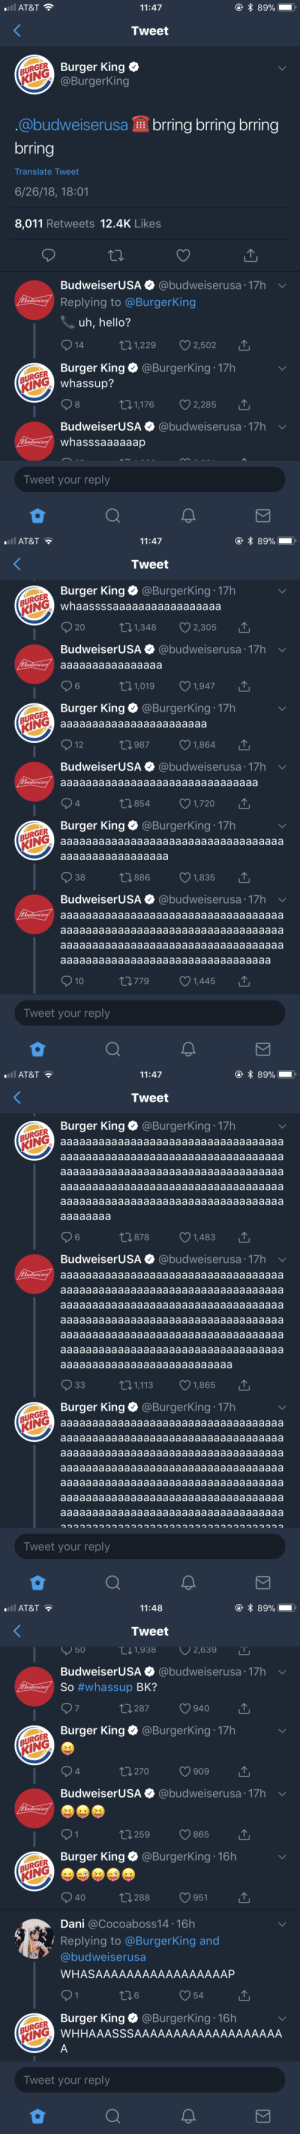 Burger King, Hello, and Tumblr: AT&T  11:47  Tweet  Burger King  @BurgerKing  IRGER  @budweiserusa ibrring brring brring  brring  Translate Tweet  6/26/18, 18:01  8,011 Retweets 12.4K Likes  BudweiserUSA @budweiserusa -17h  ying to @BurgerKing  uh, hello?  14  t01,229 2,502  Burger King @BurgerKing 17h  whassup?  URGER  8  t 1,176  2,285  BudweiserUSA @budweiserusa 17h  Budwhasssaaaaaap  Tweet your reply   11:47  Tweet  Burger King @BurgerKing 17h  AT&T  IRGER  whaassssaaaaaaaaaaaaaaaaa  20  01,348 2,305  BudweiserUSA @budweiserusa 17h  Buileiser aaaaaaaaaaaaaaaa  6  01,019  1,947  Burger King  @BurgerKing 17h  RGER  987 1,864  BudweiserUSA @budweiserusa 17h  4  854  1,720  Burger King @BurgerKing 17h  URGER  38  ロ886  1,835  BudweiserUSA Ф @budweiseru sa-17h  Buileiser aaaaaaaaaaaaaaaaaaaaaaaaaaaaaaaaaaa  0779 1,445  Tweet your reply   all  AT&T  11:47  Tweet  Burger King @BurgerKing 17h  BURGER  KING  6  0878 1,483  BudweiserUSA @budweiserusa 17h  Bulreieraaaaaaaaaaaaaaaaaaaaaaaaaaaaaaaaaaa  01,113 1,865  Burger King @BurgerKing 17h  BURGER  KING  Tweet your reply   AT&T  11:48  Tweet  50  L1,938 2,639  BudweiserUSA Ф @budweiseru sa-17h  So #whassup BK?  287  940  Burger King @BurgerKing 17h  RGER  4  t 270  909  BudweiserUSA Ф @budweiseru sa , 17h  iweuse  1259 865  Burger King @BurgerKing 16h  RGER  40  ,288  951  Dani @Cocoaboss14 16h  、. Replying to @Burgerking and  @budweiserusa  WHASAAAAAAAAAAAAAAAAAP  6  54  Burger King @BurgerKing 16h  URGER  Tweet your reply max-out-of-ten: catchymemes:  What a riveting conversation between the king and his drink of choice   This is what marketing has devolved into and it's incredible how effective it is.